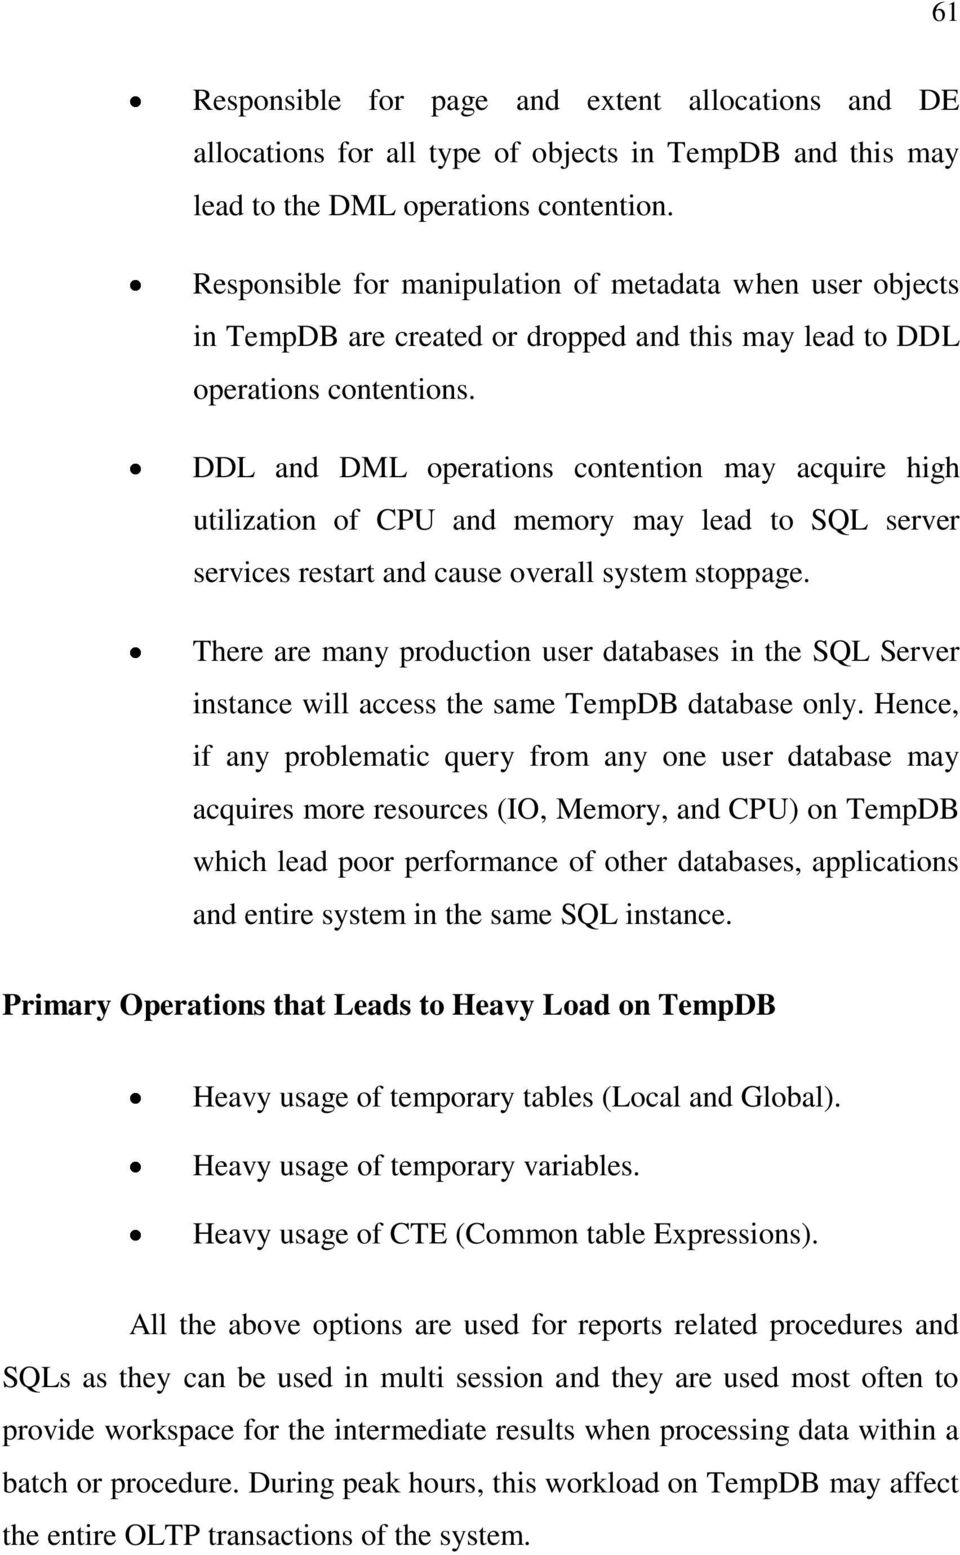 DDL and DML operations contention may acquire high utilization of CPU and memory may lead to SQL server services restart and cause overall system stoppage.